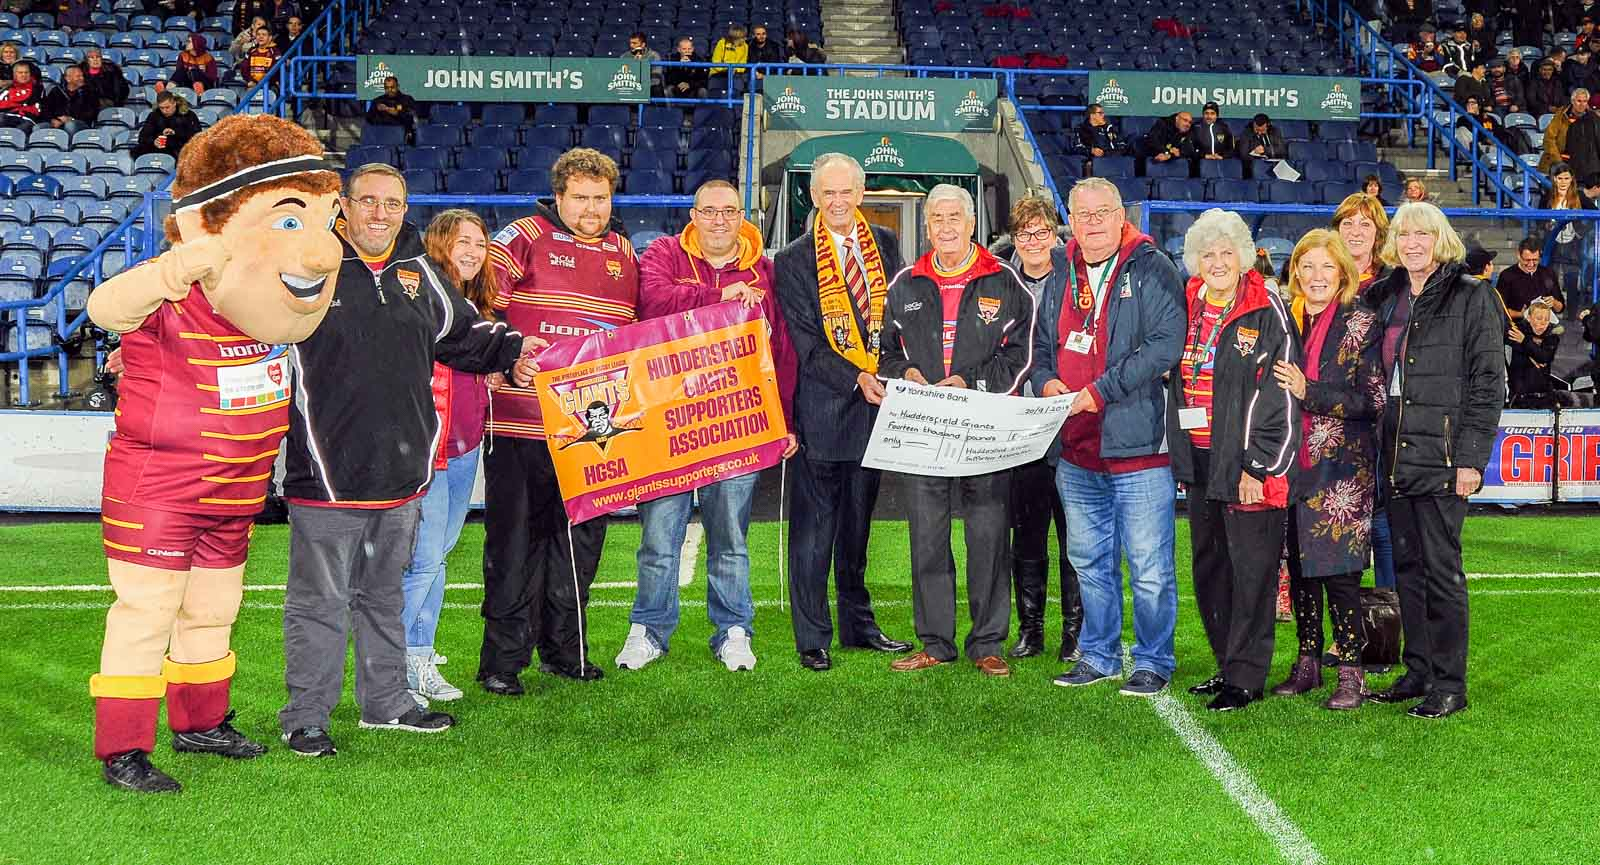 Your committee presenting Ken Davy with a cheque for £14 000, the result of our 2018 efforts. The money goes towards the development of youth rugby.